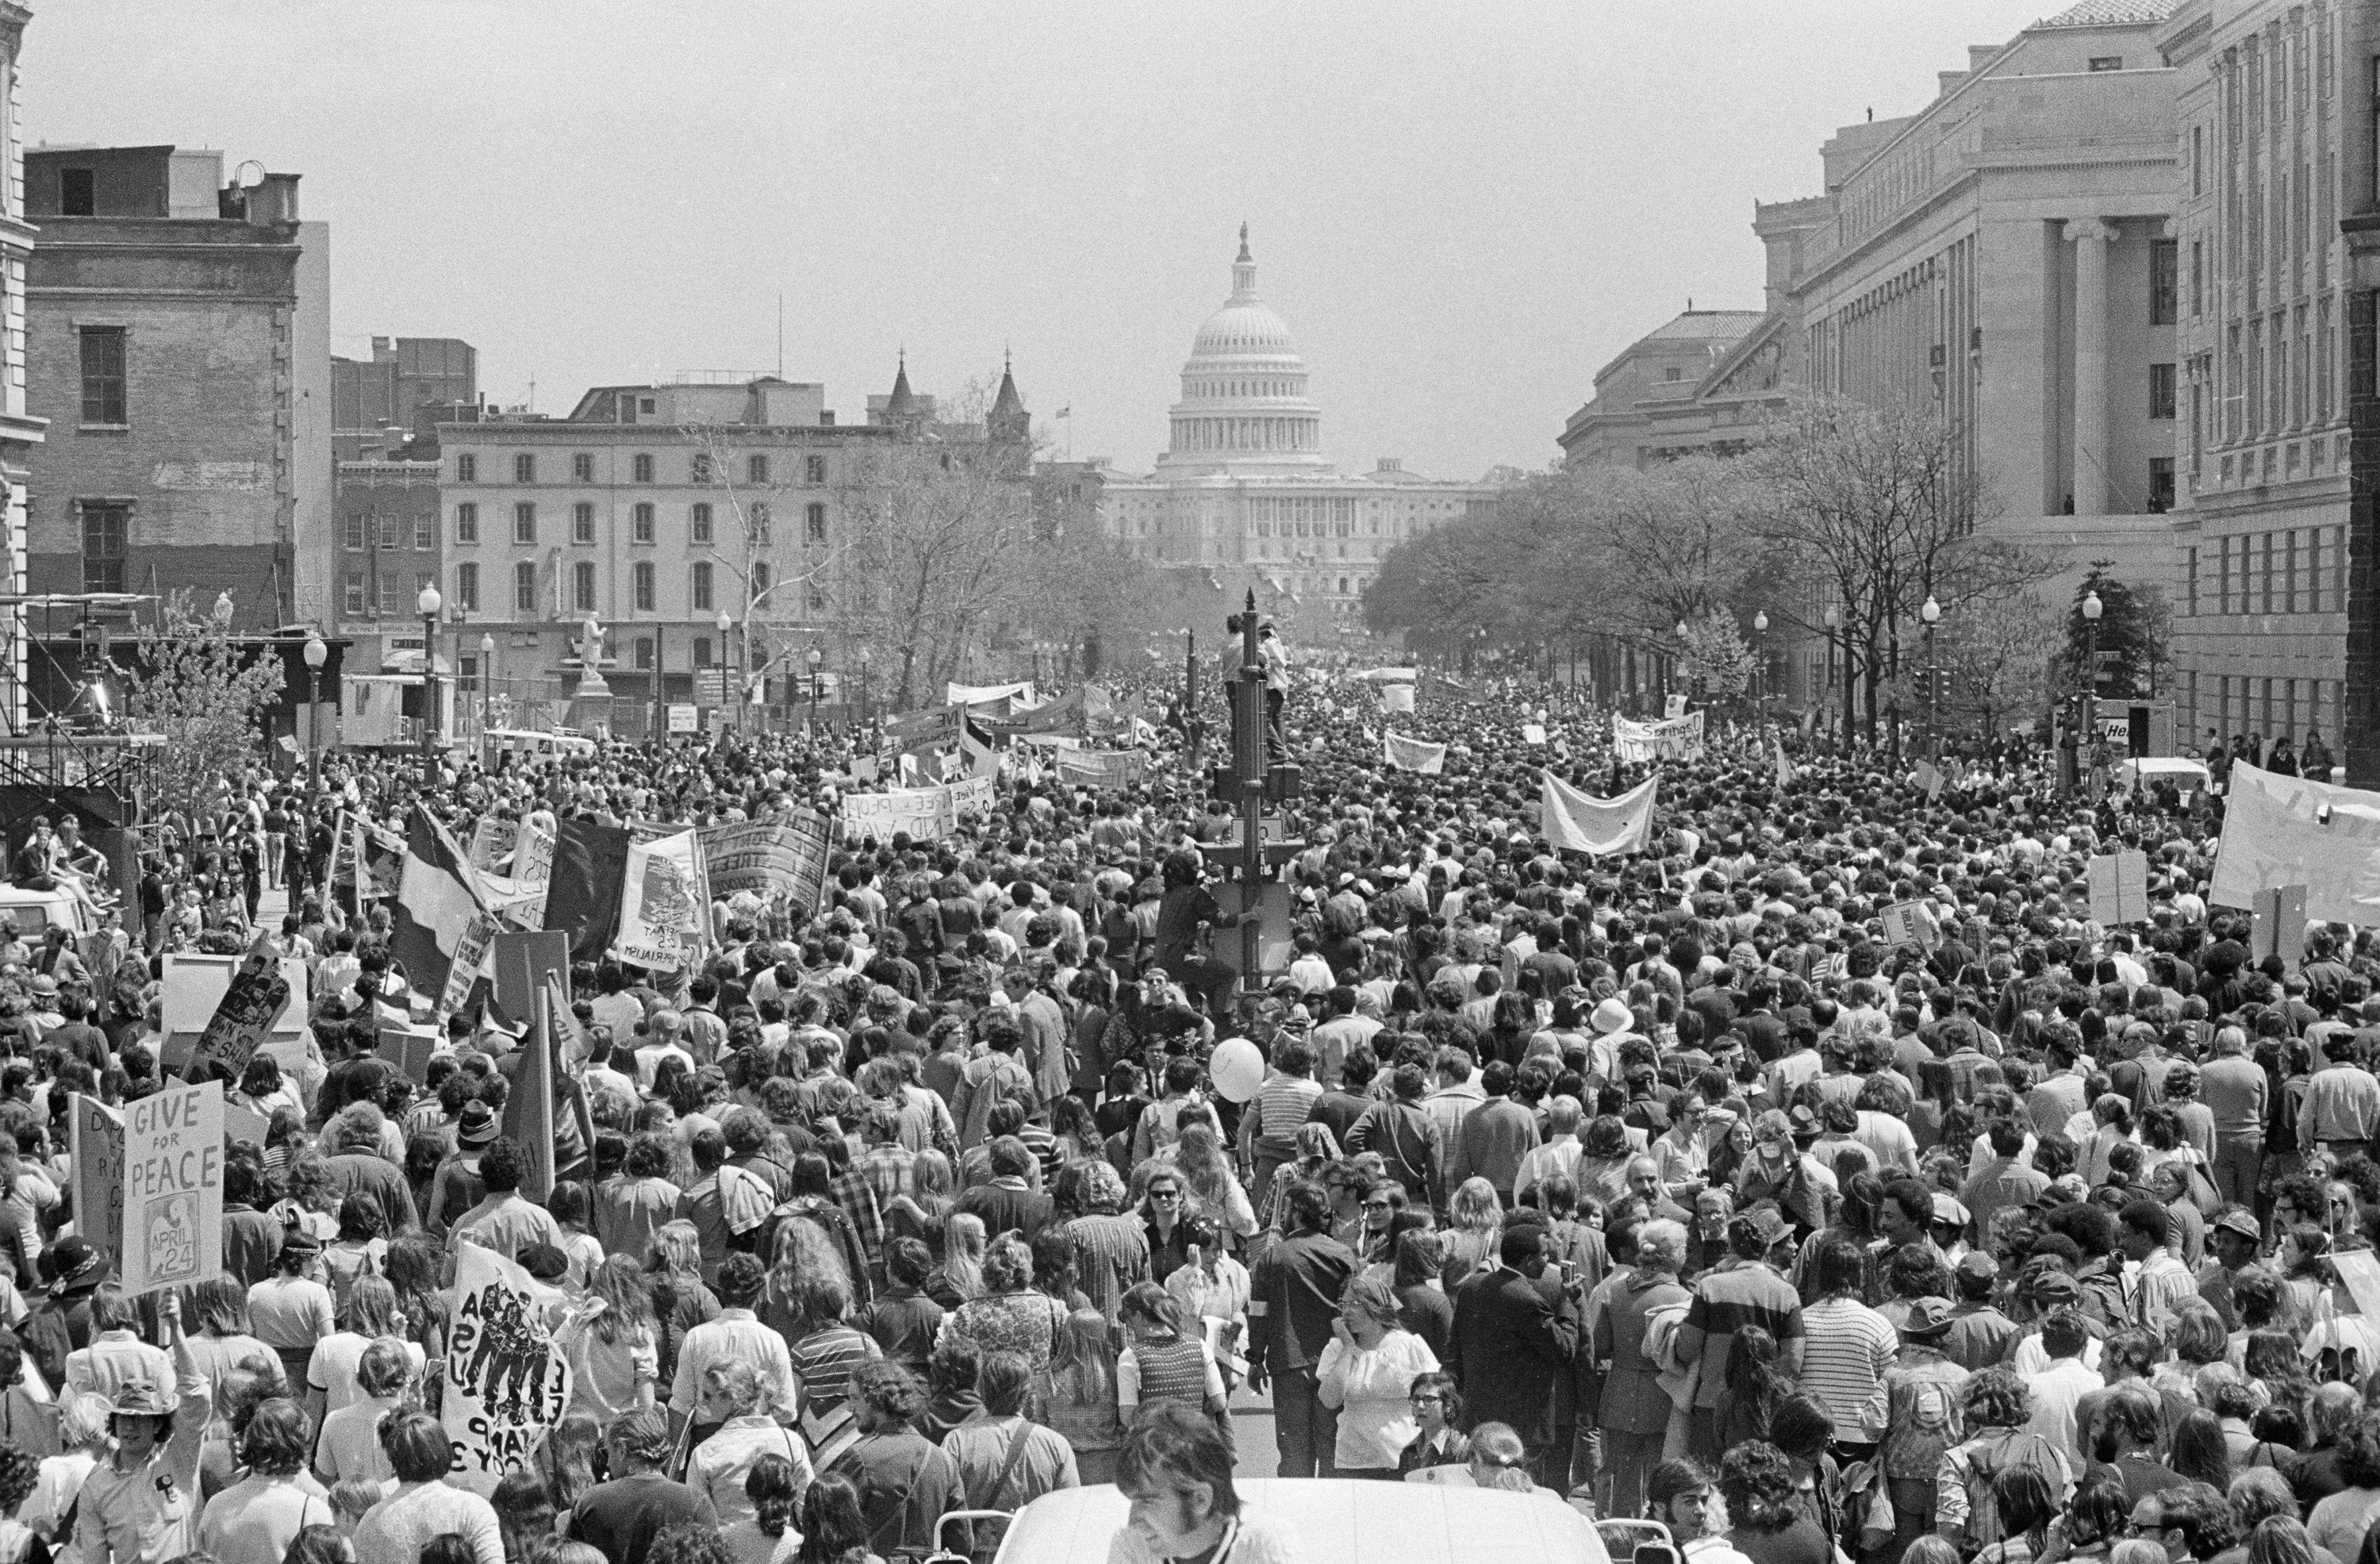 Photograph of Vietnam War protest in Washington